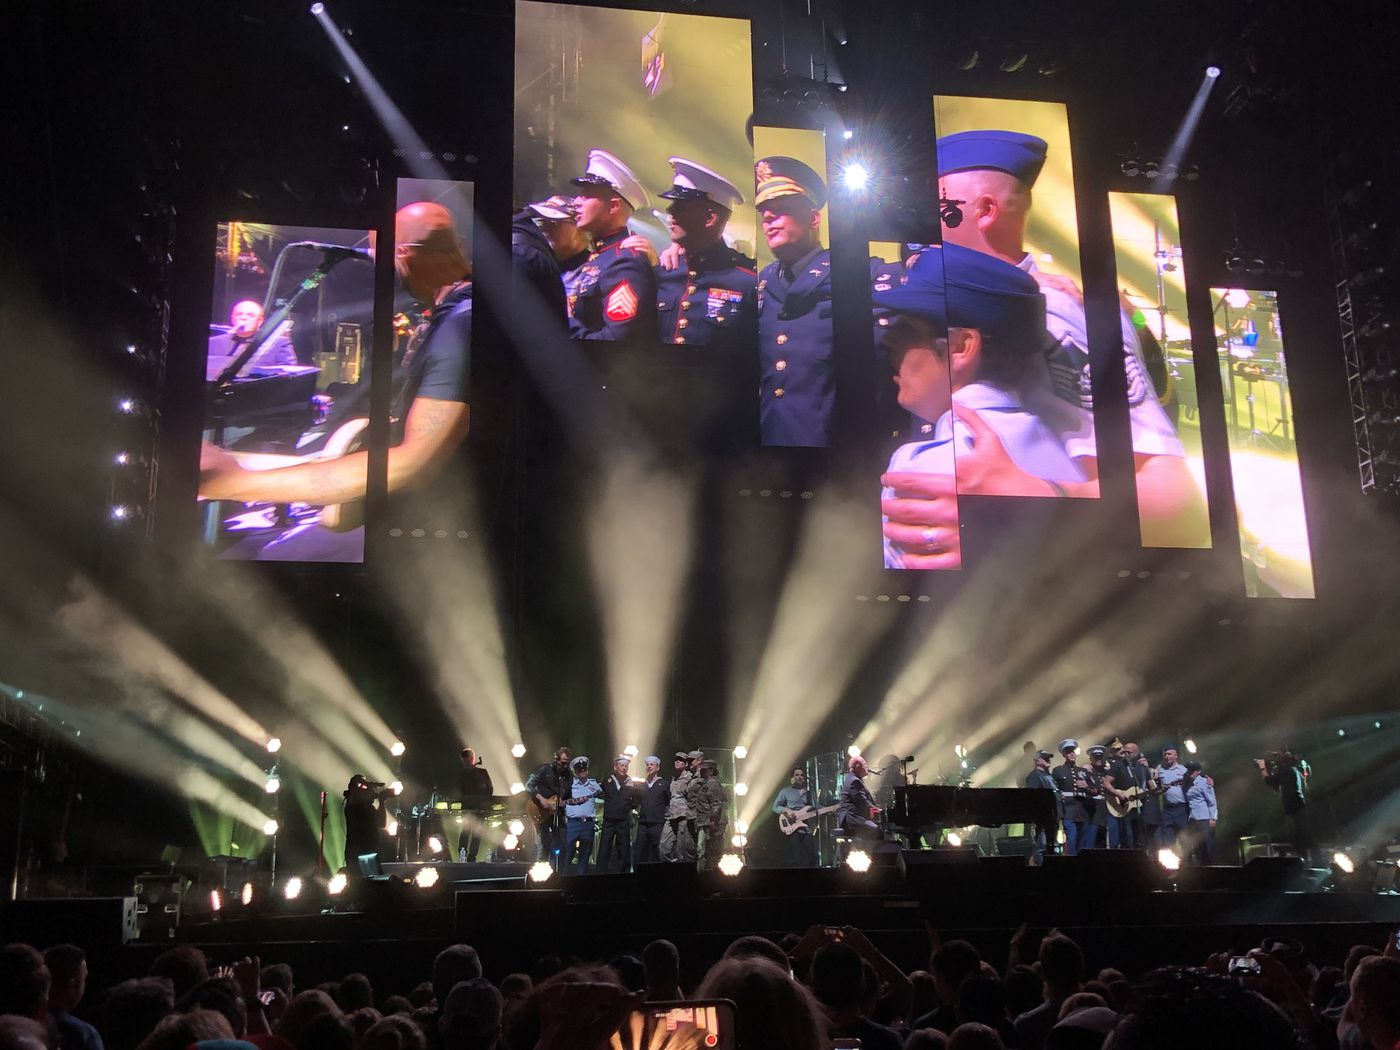 Billy Joel at Citizens Bank Park: The Piano Man brings out special guests for a night of hits, but doesn't Phi